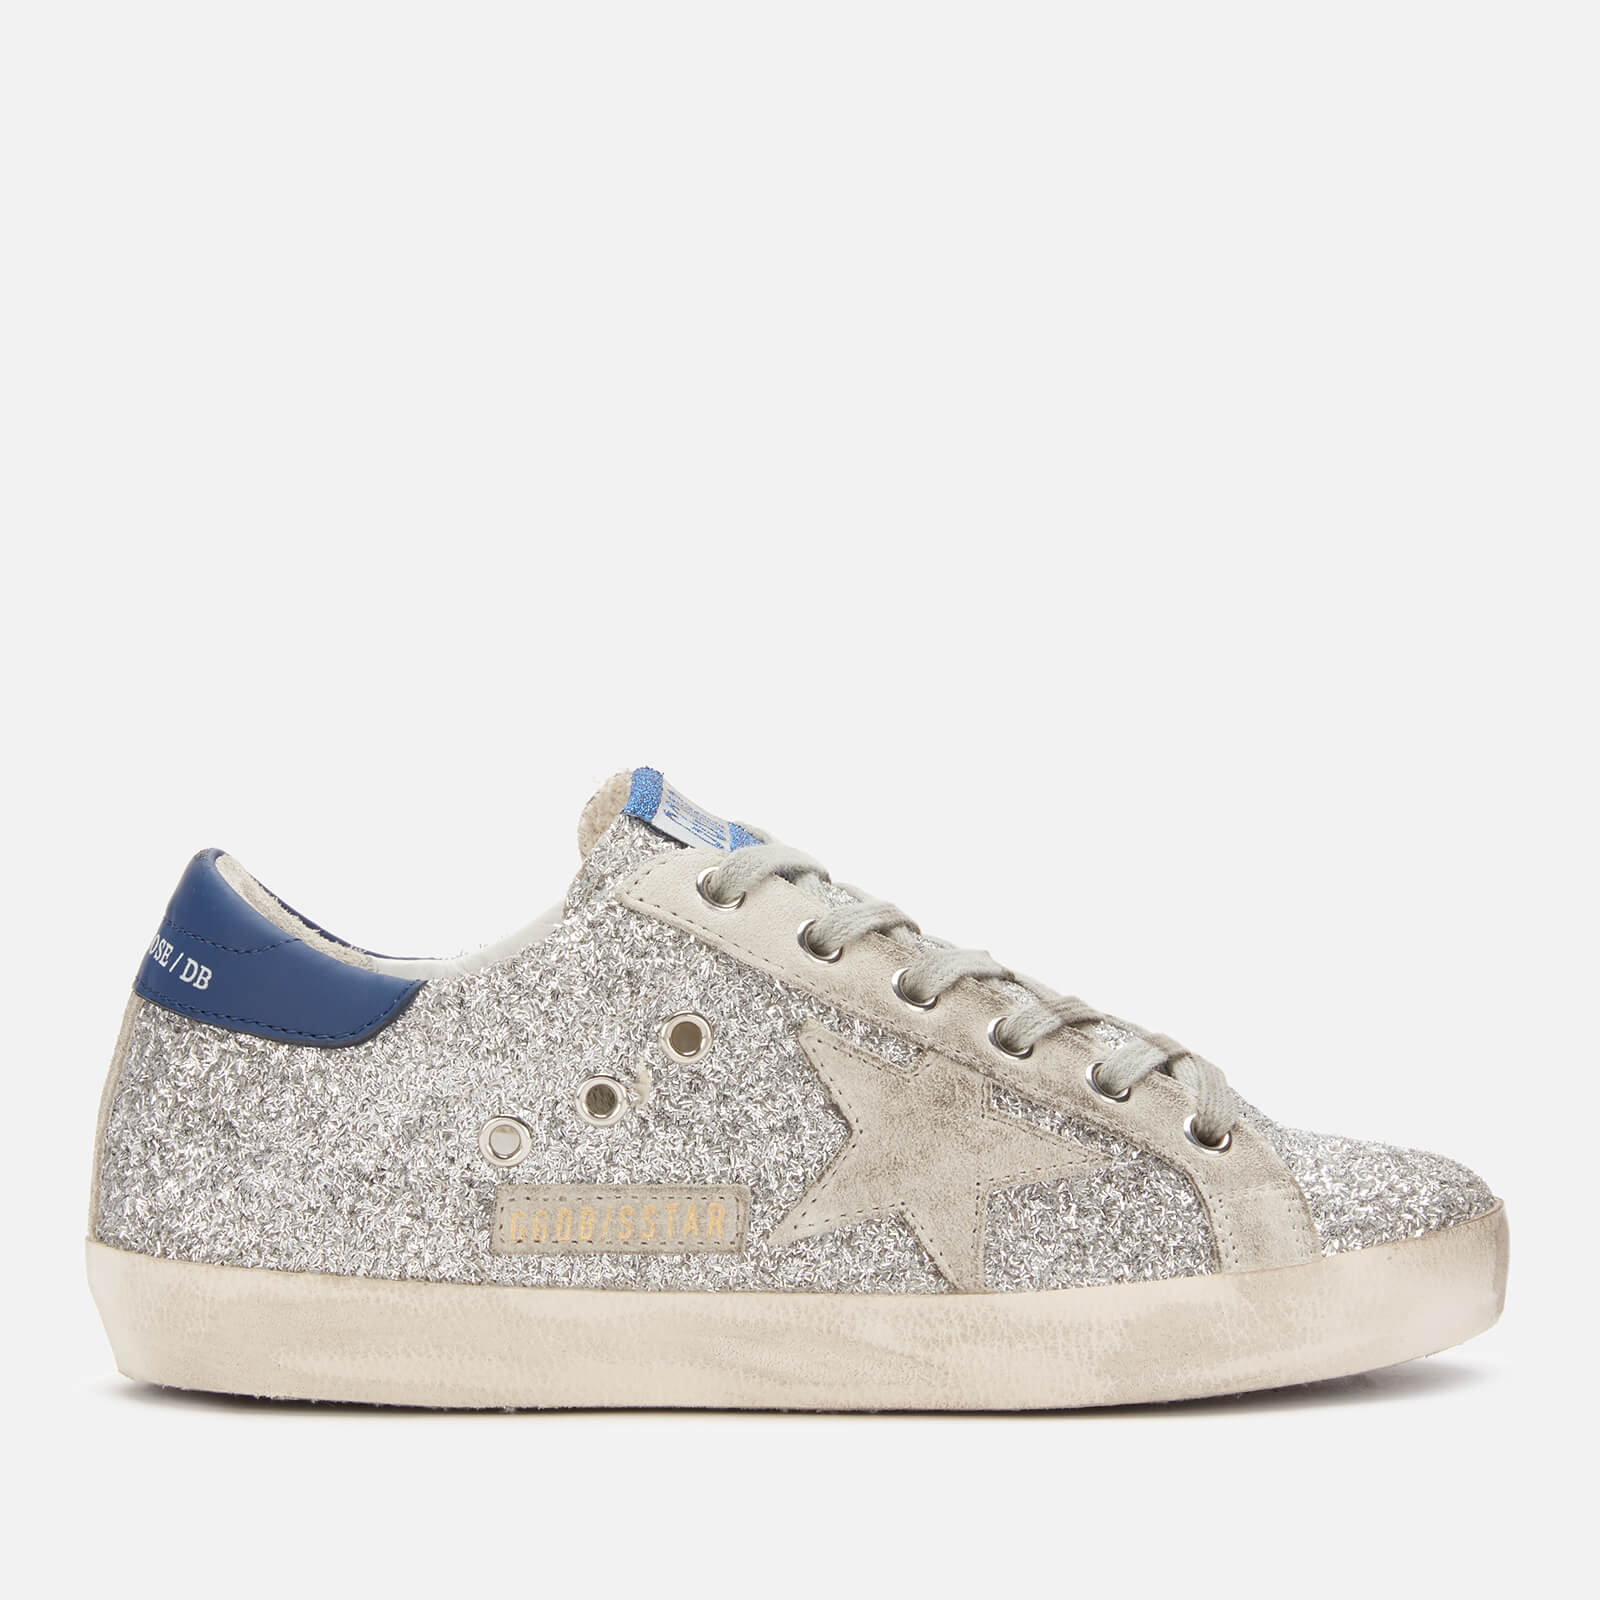 Golden Goose Deluxe Brand Women's Superstar Leather Trainers - Silver Glitter Blue/Ice Star - UK 6 - Silver